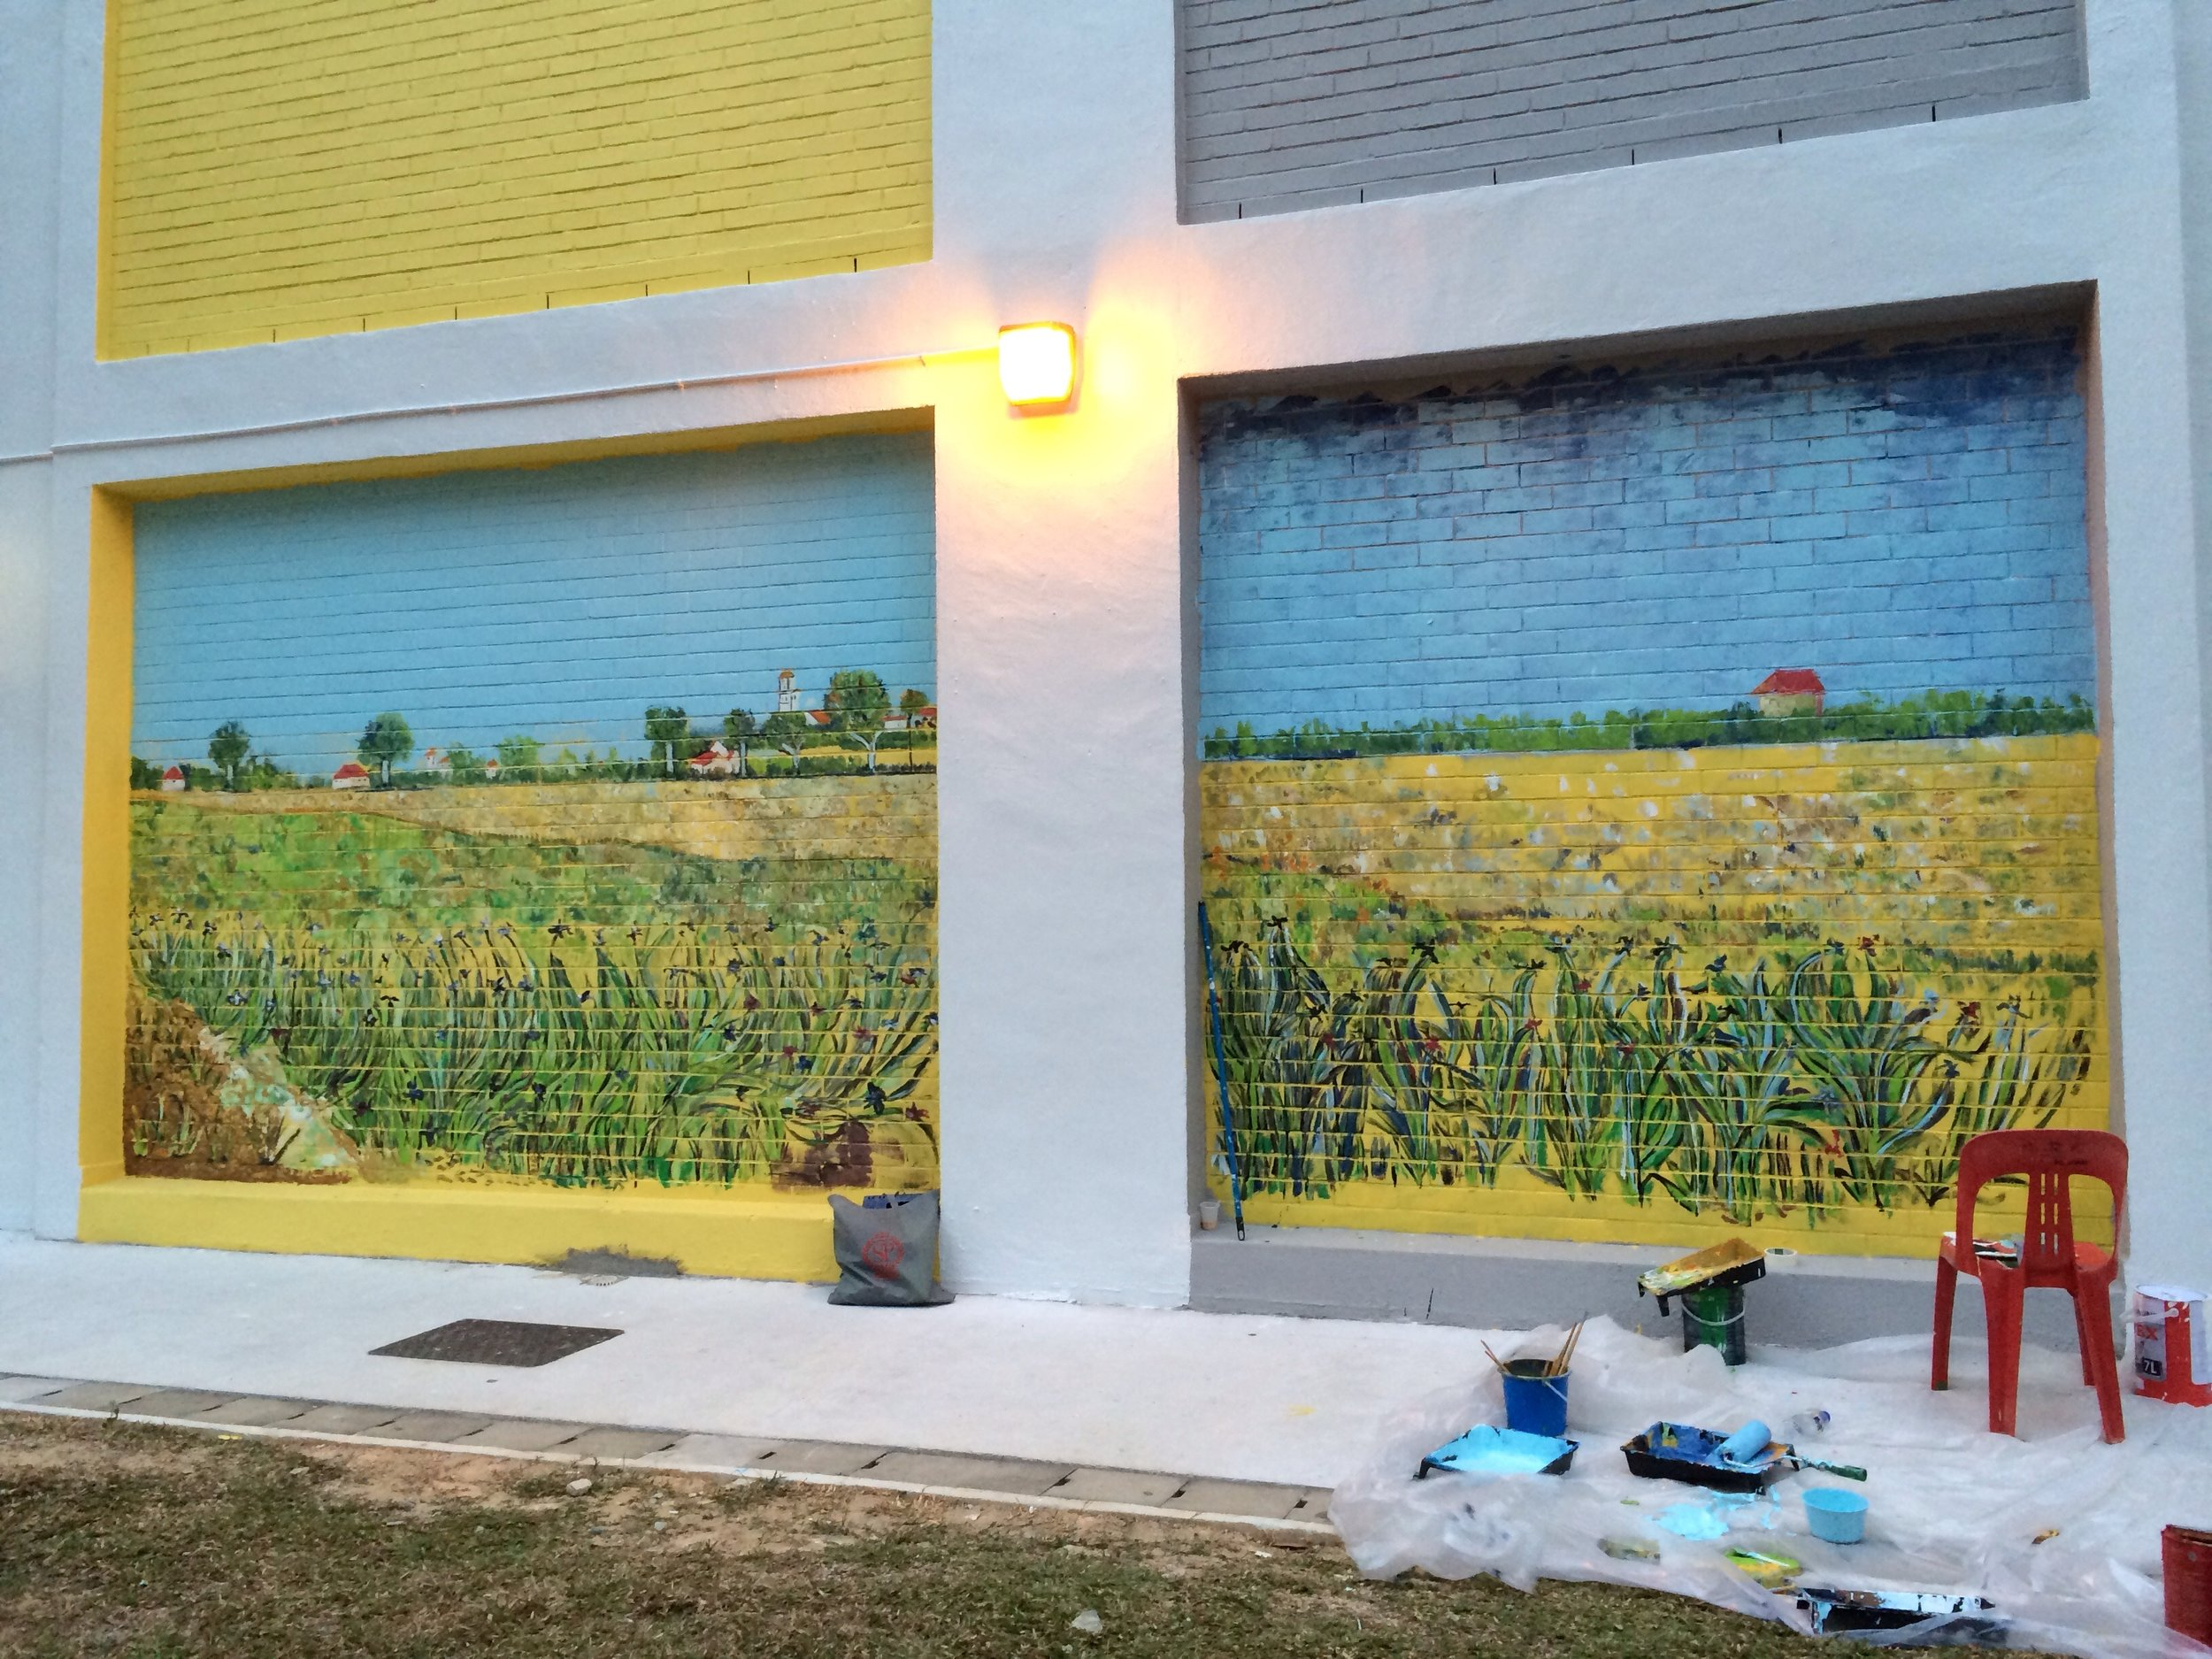 The second wall of arises after the Starry Night and it's next to the police post. I spent just two weekends with this and was pretty surprised.  My first taste of texturing on a big wall and felt the heat from the sun too.  This one was influenced by Van Gogh's irises looking at Arles.